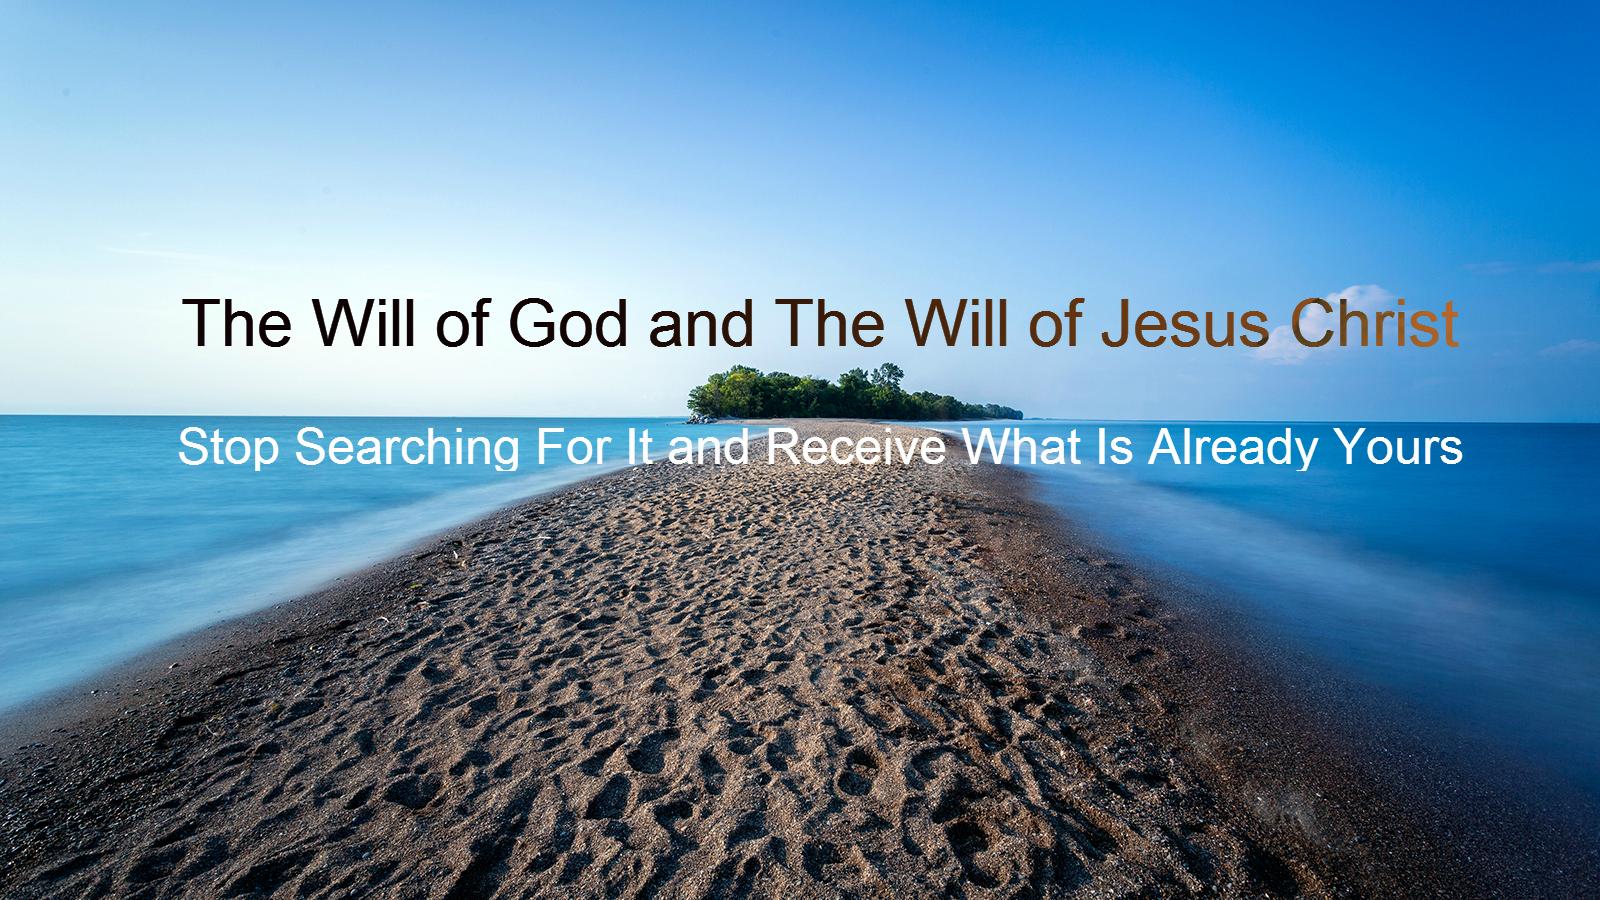 the will of god and the will of jesus christ stop searching for